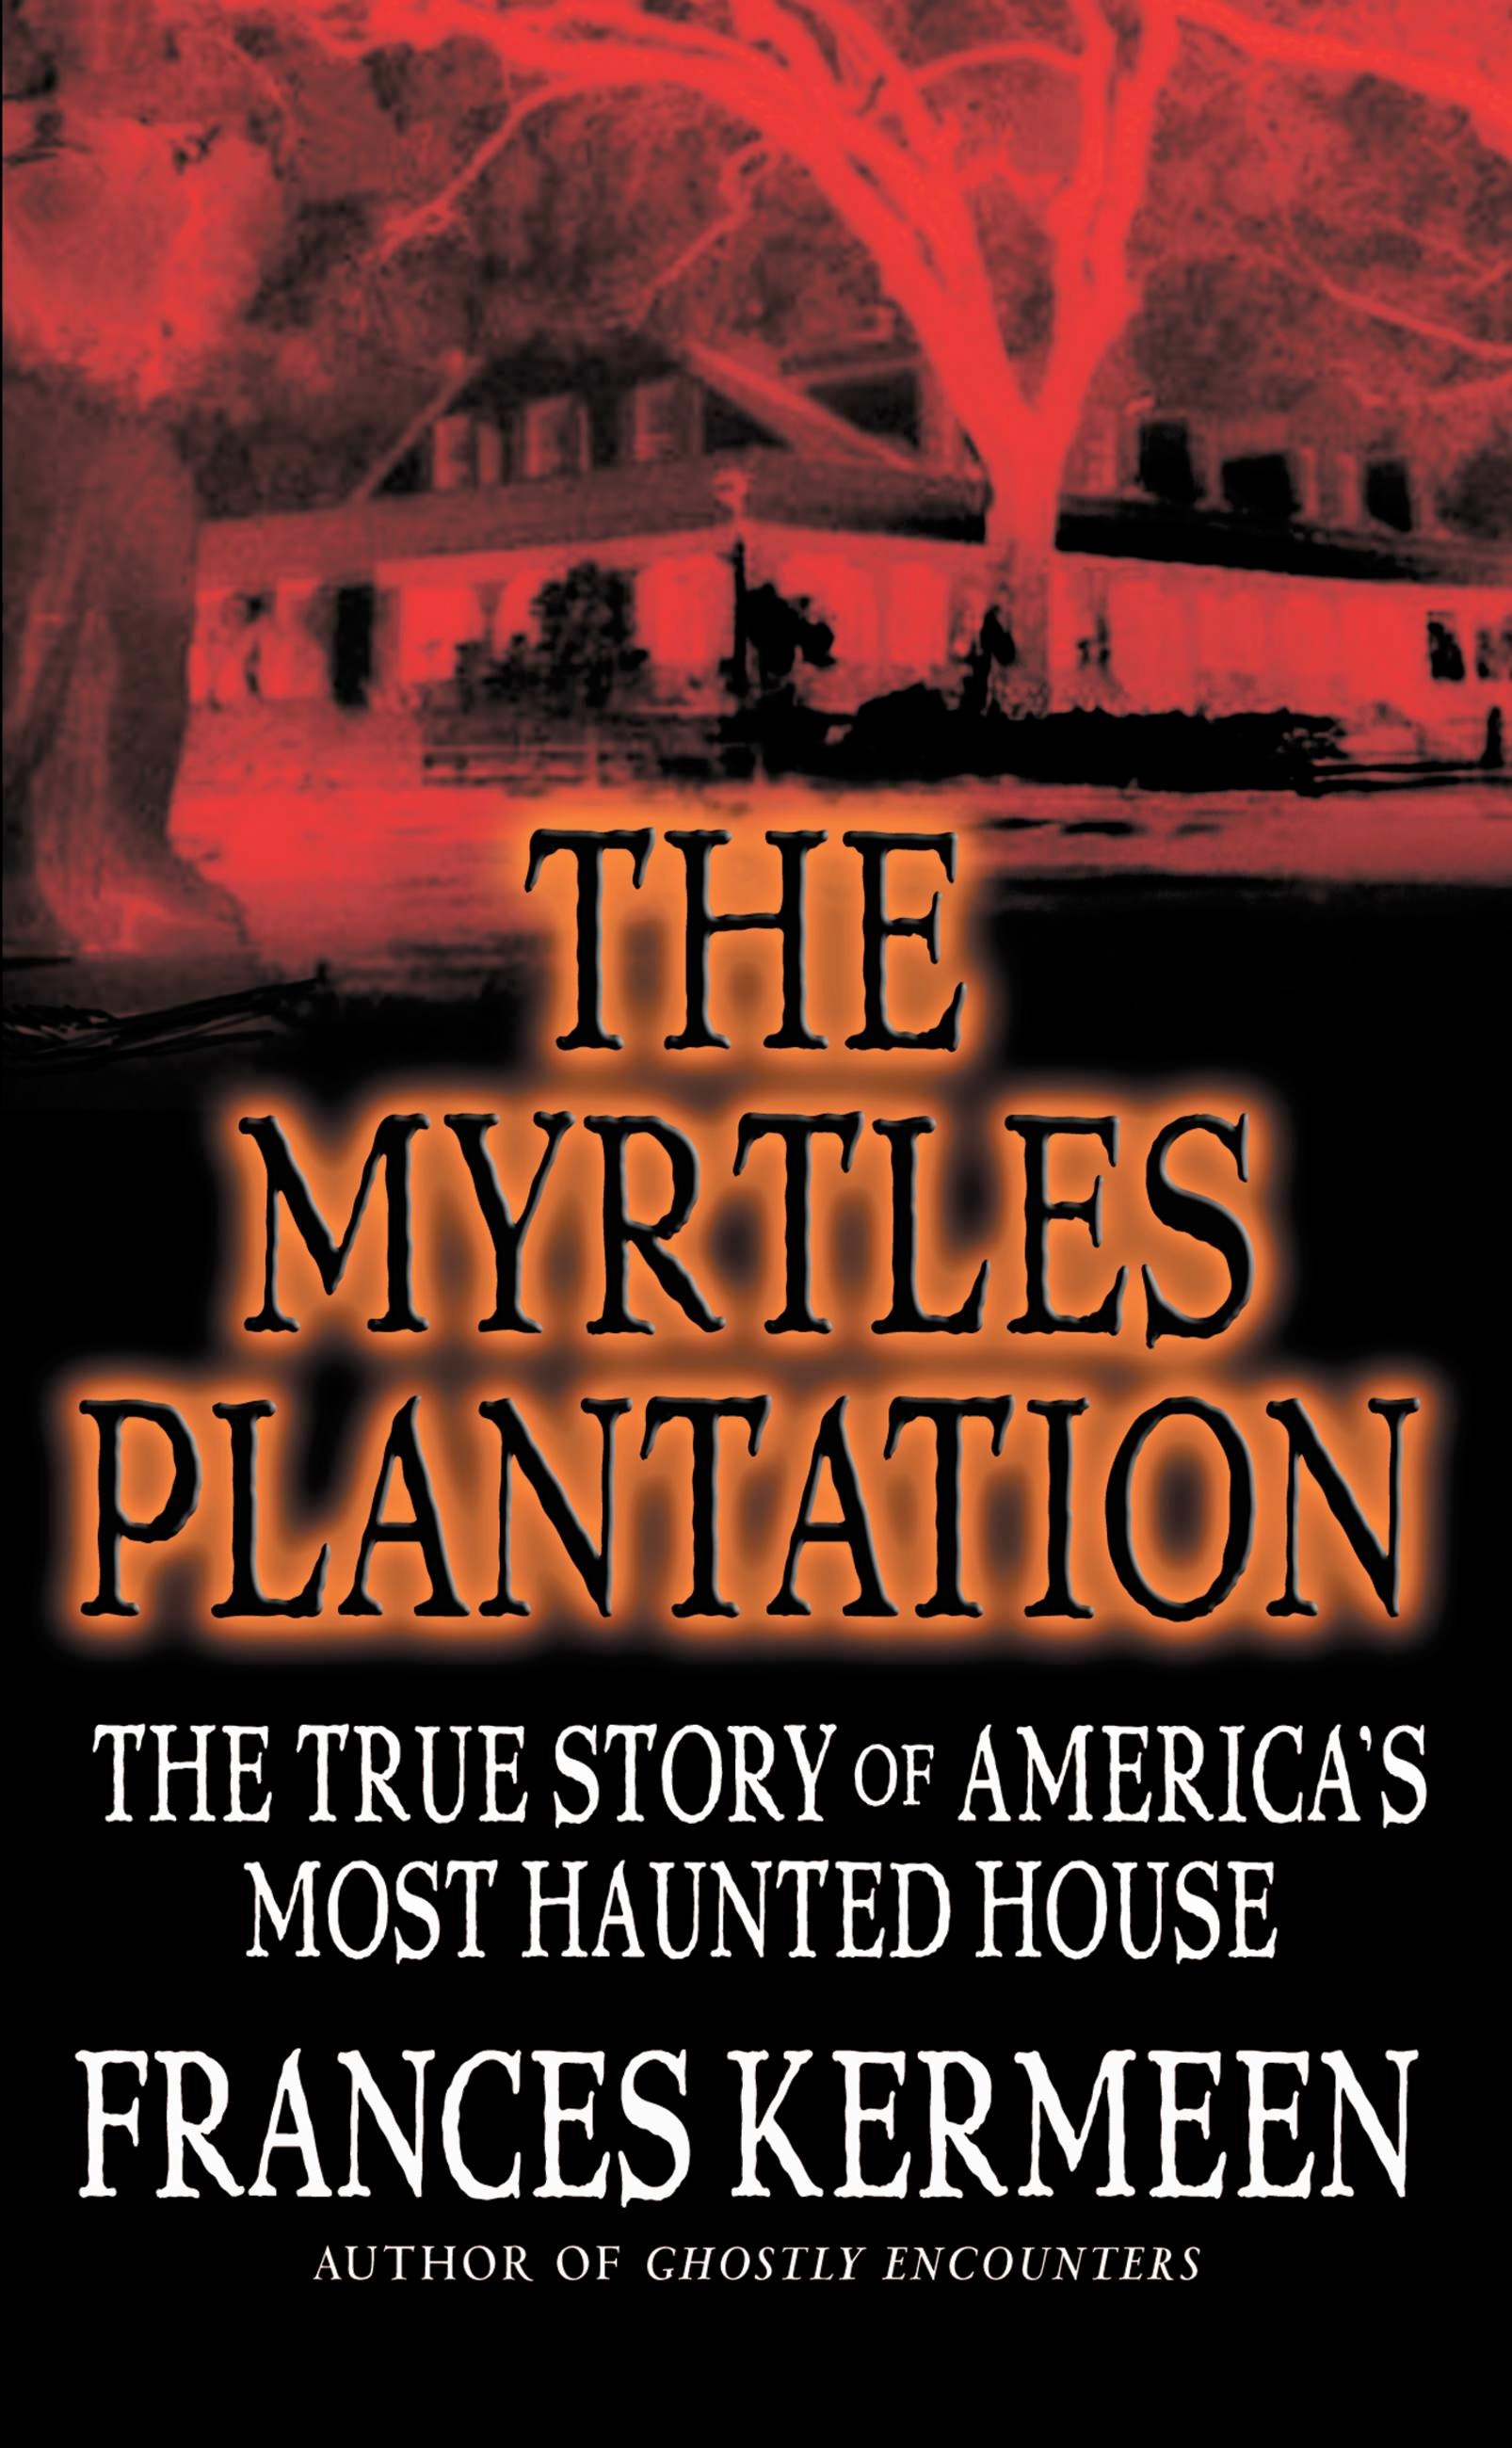 'The Myrtles Plantation: The True Story of America's Most Haunted House' by Frances Kermeen